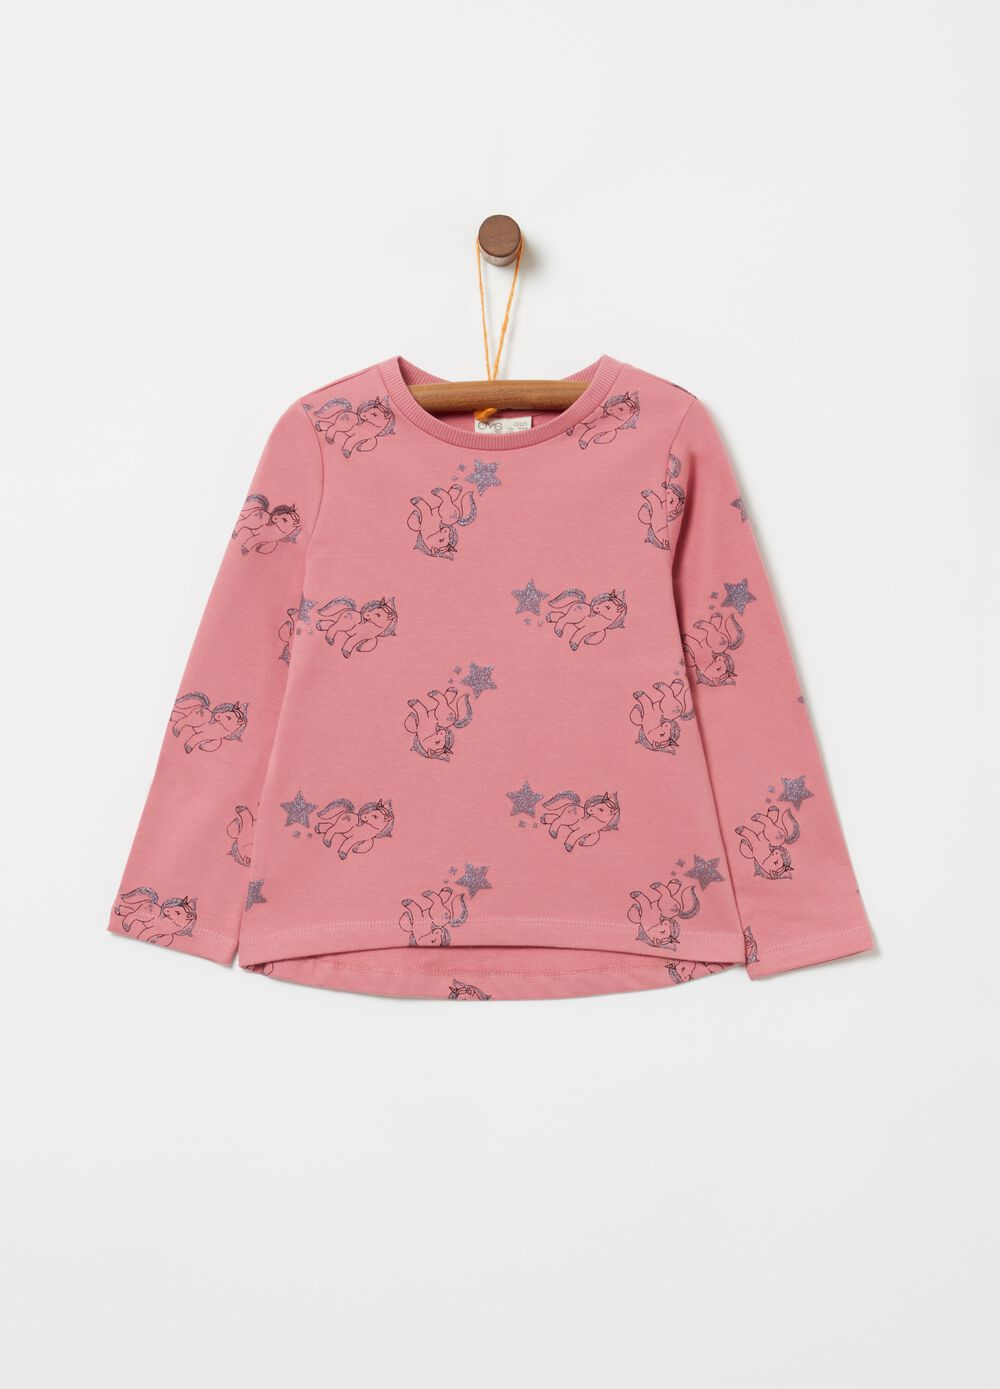 Sweatshirt with glitter unicorn pattern